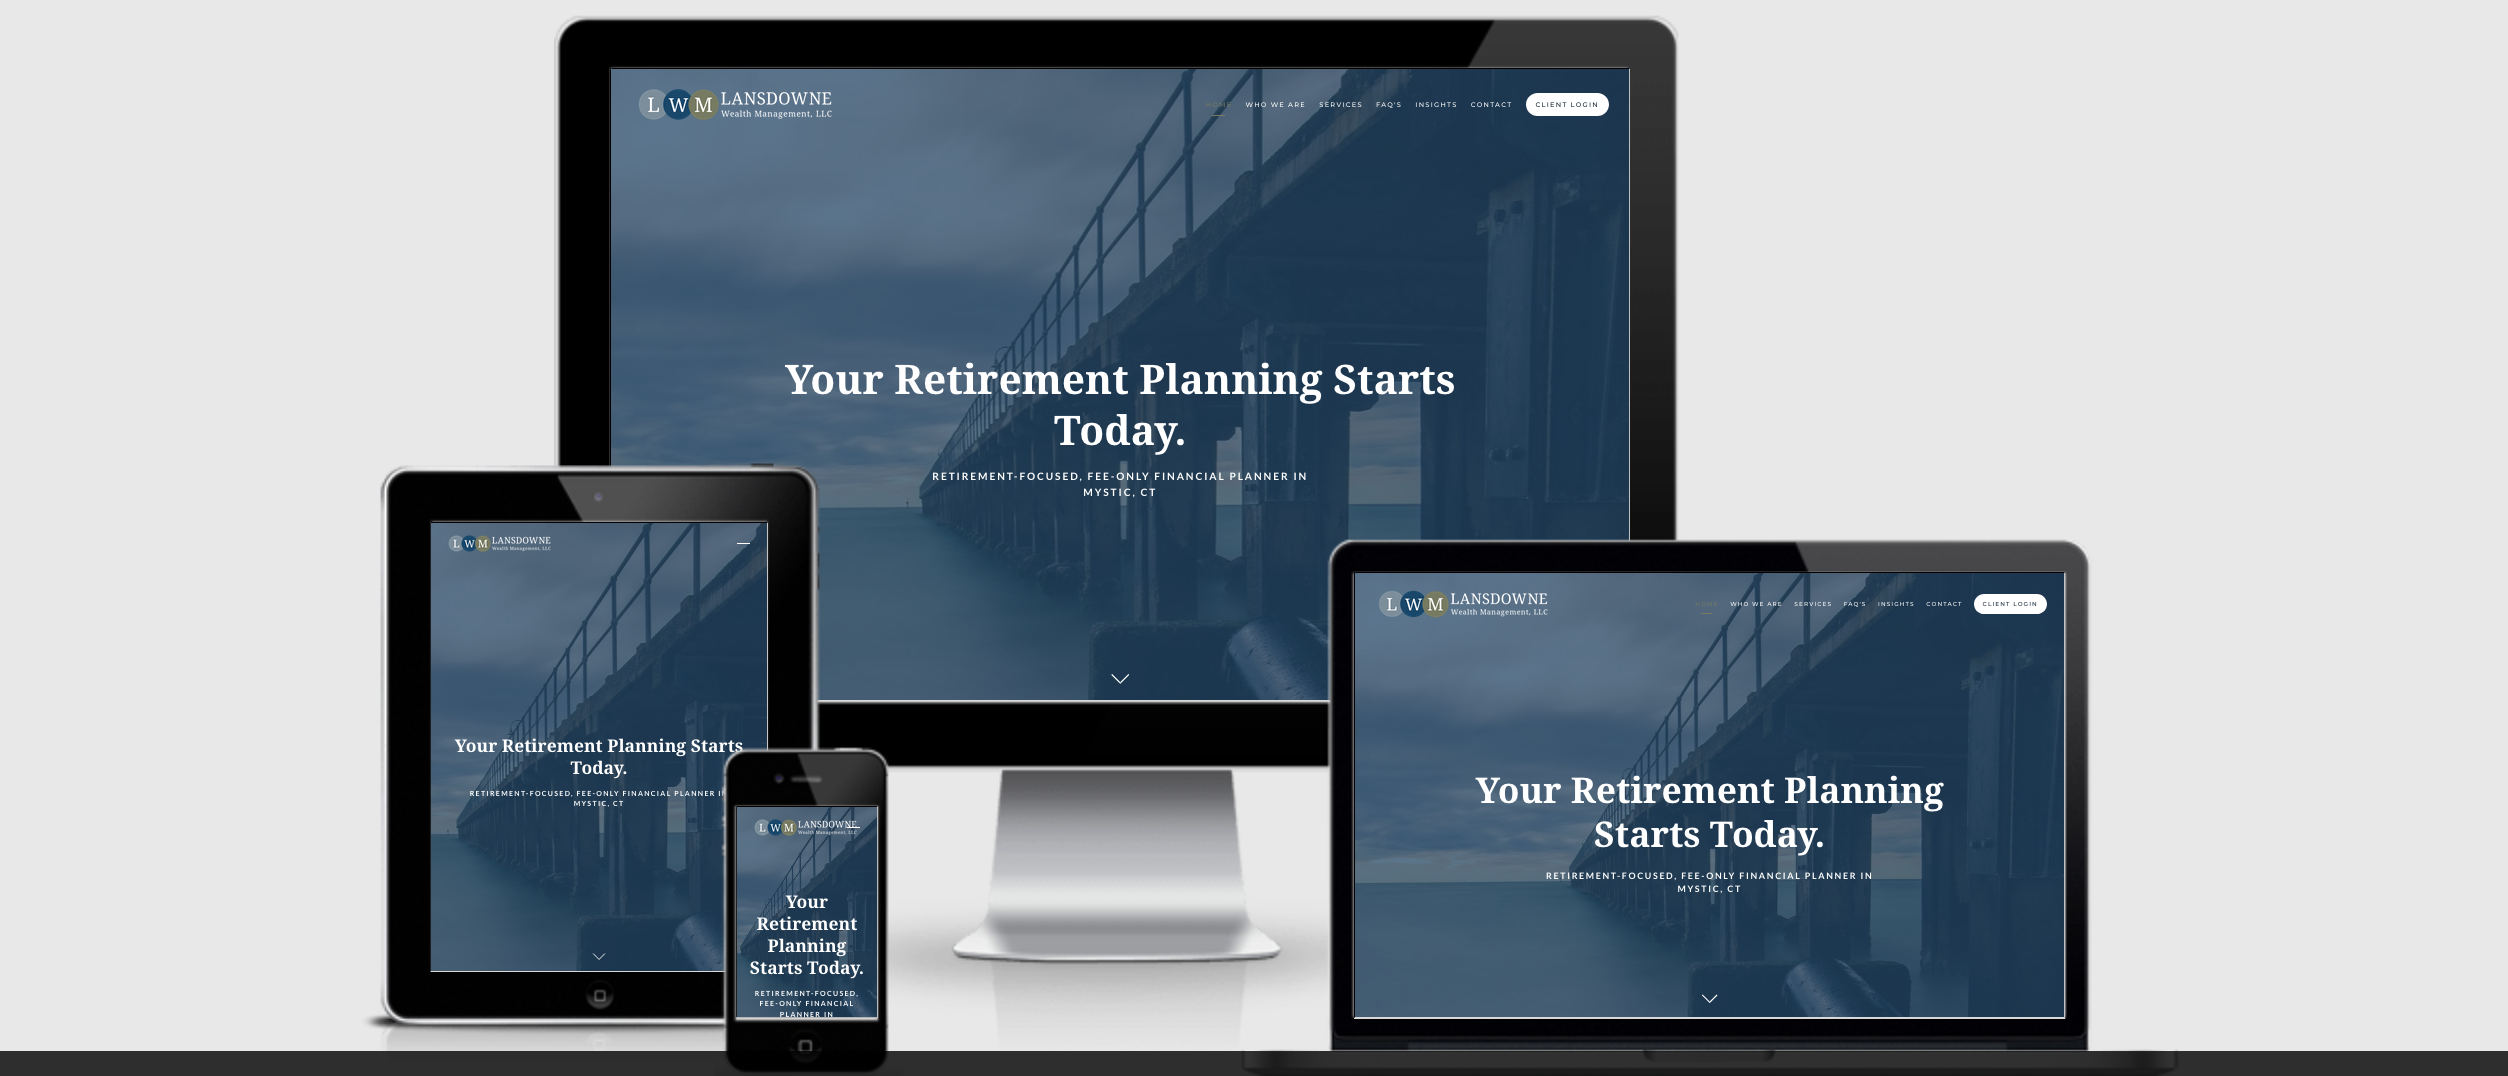 Lansdowne Wealth management, financial advisor website